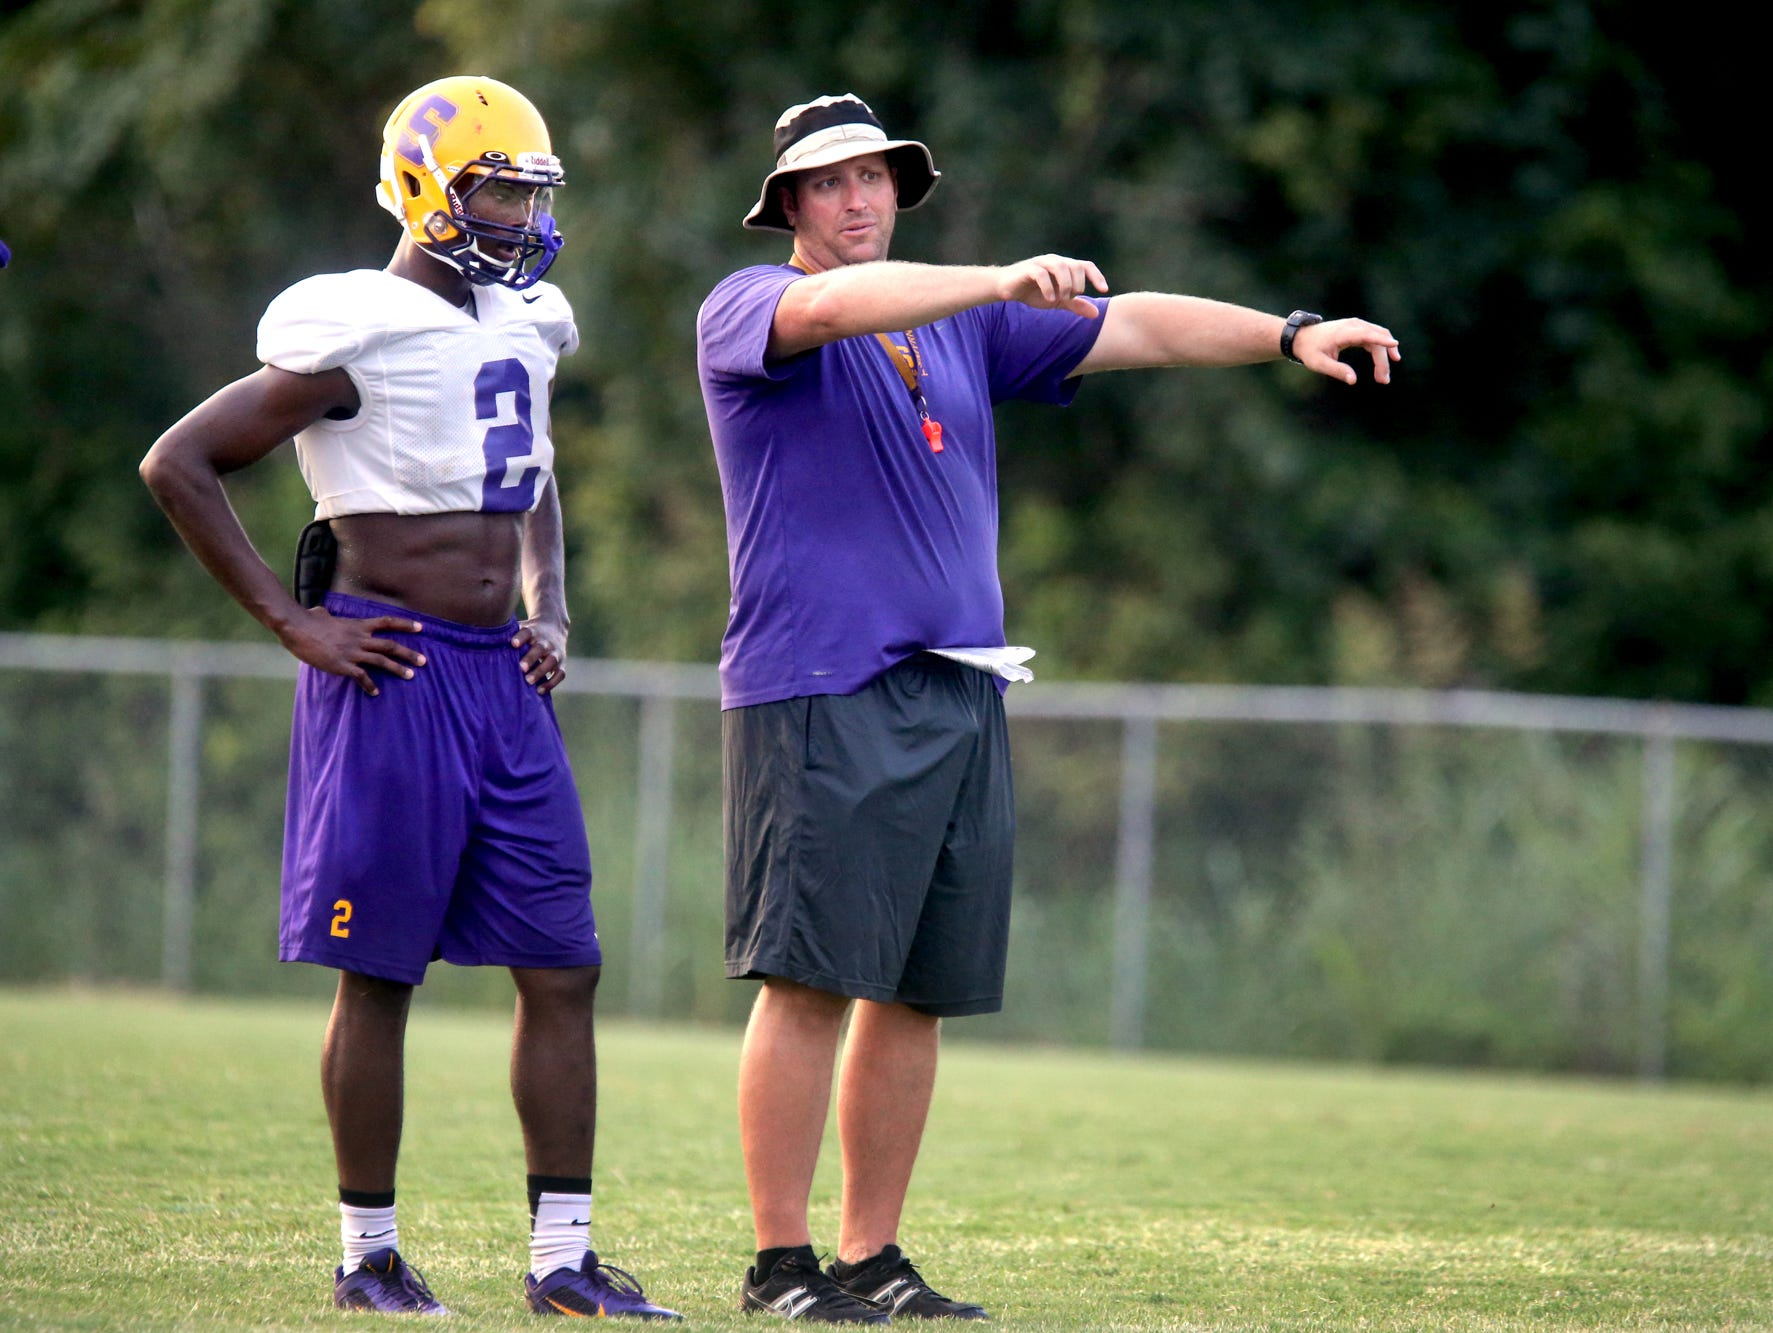 Smyrna Head Coach Matt Williams works with works with a player during the school's first day of pracitce with full pads on Monday, July 27, 2015.